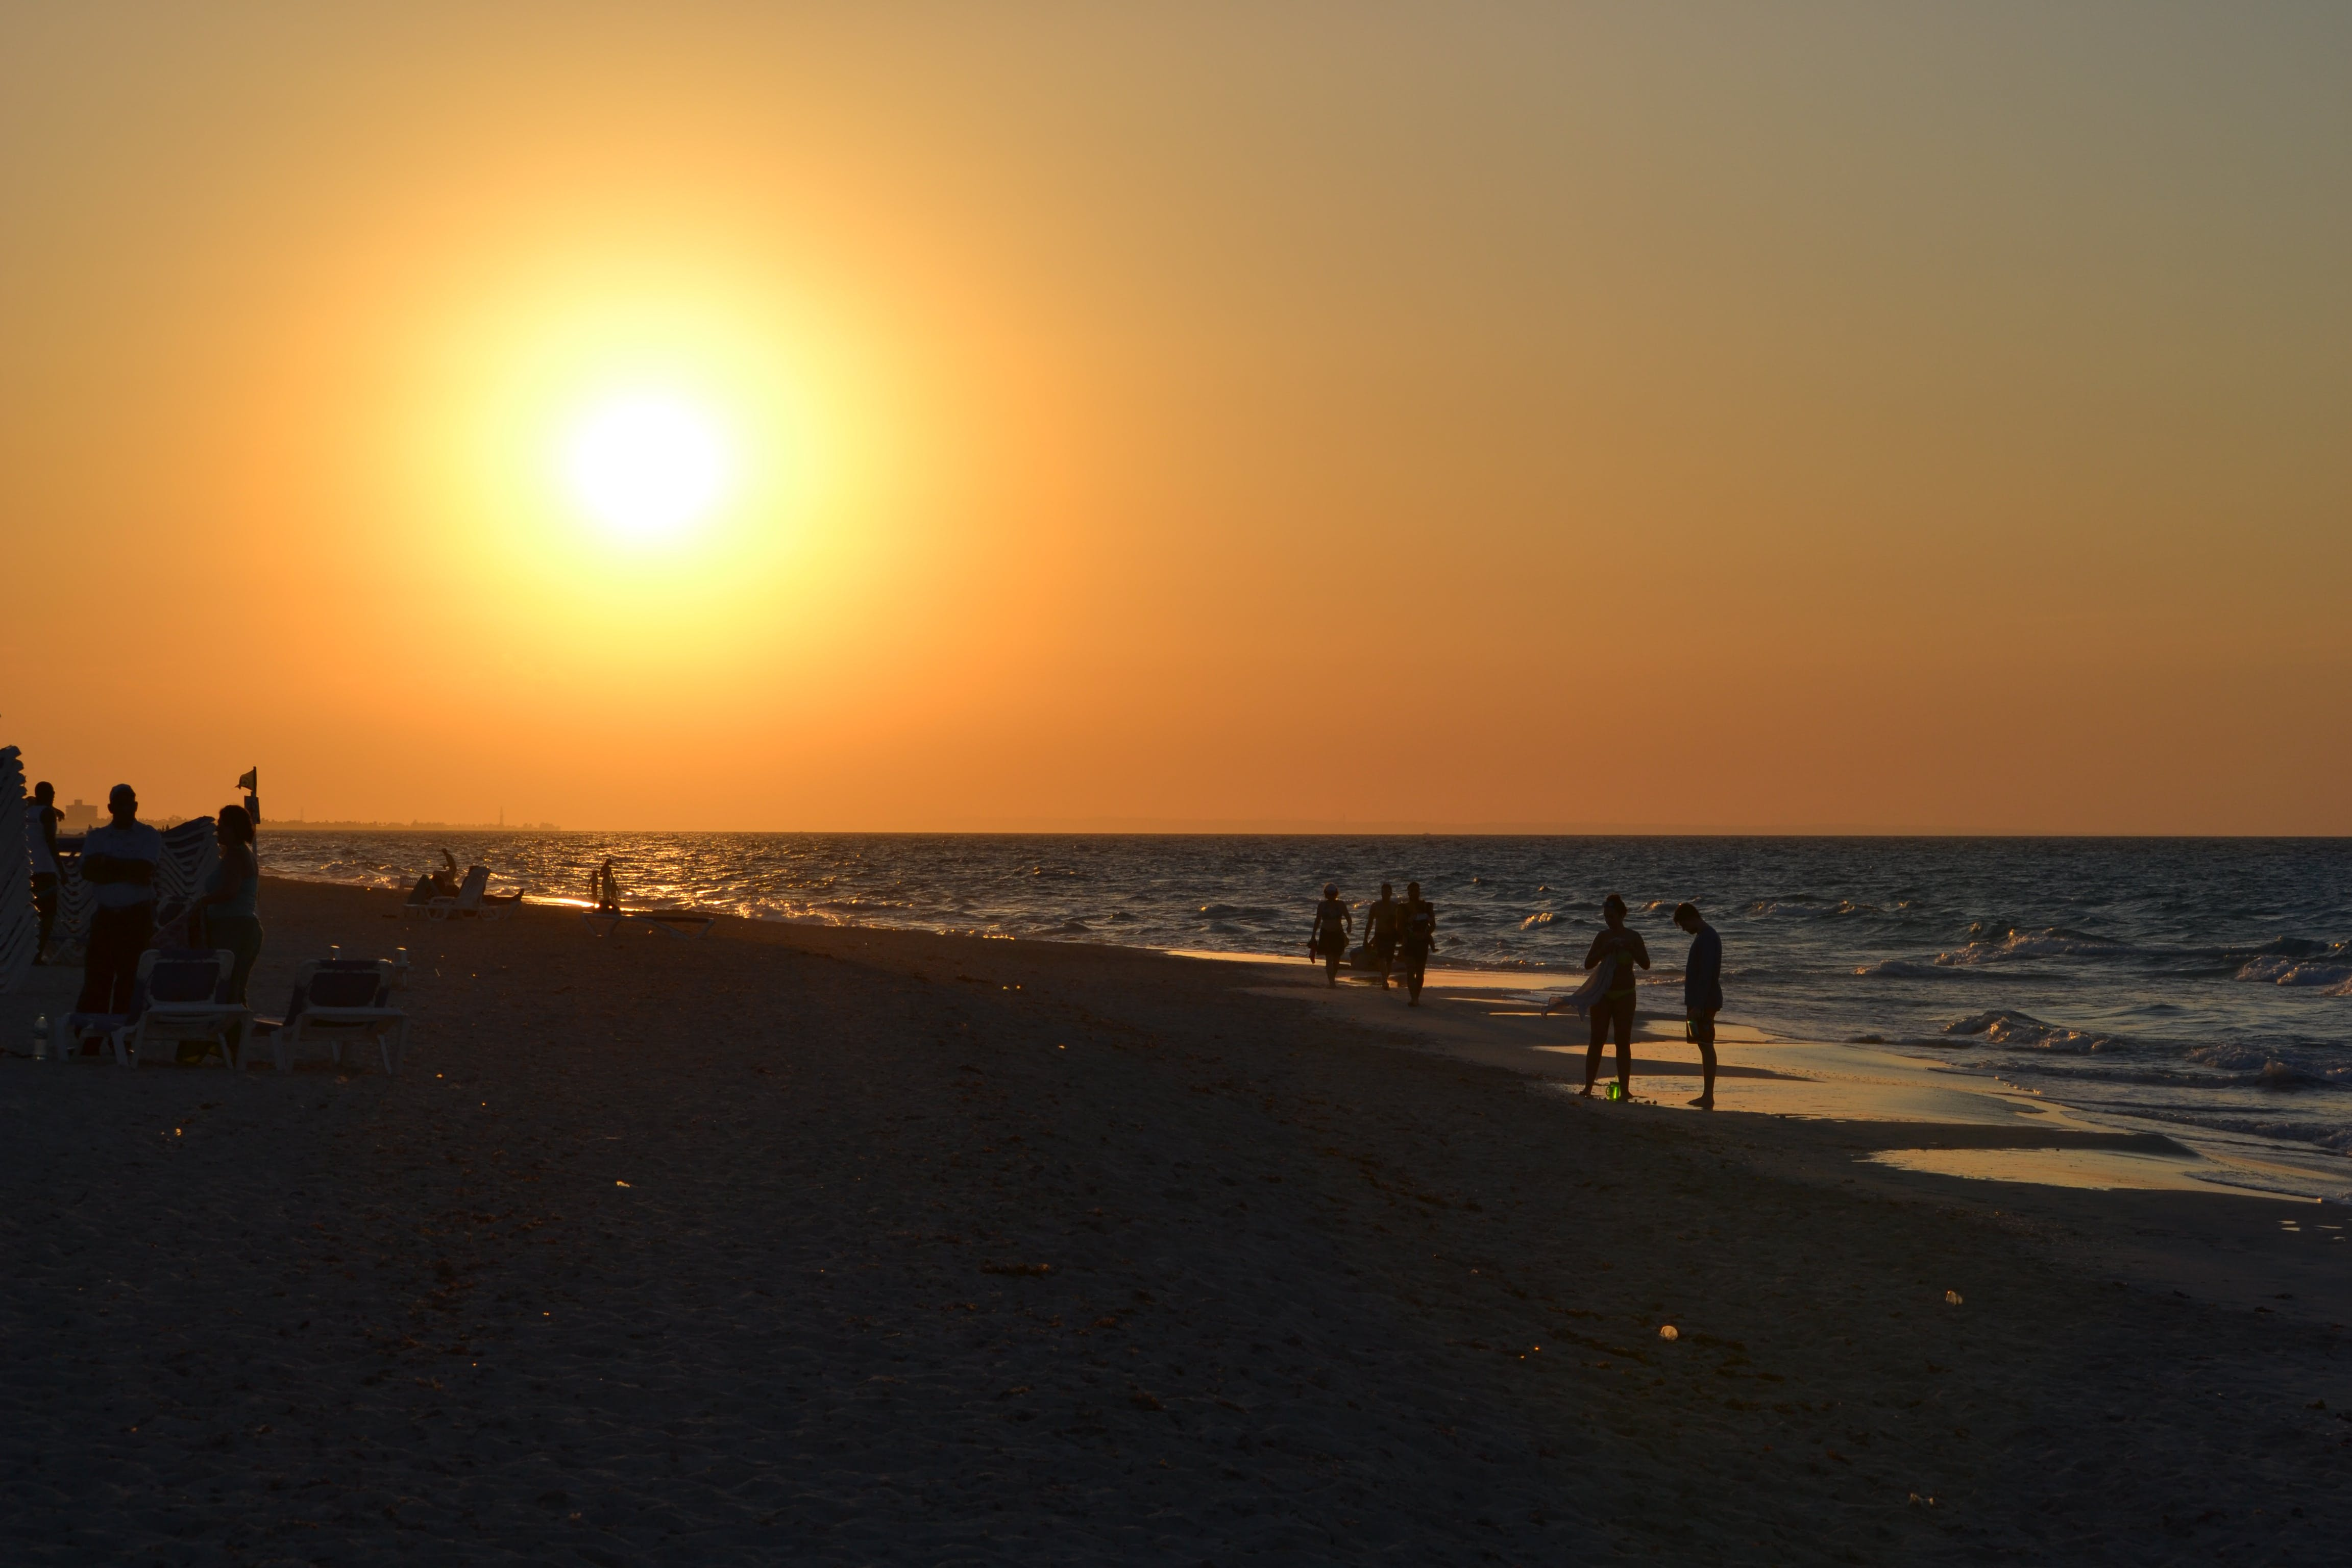 Several People Standing on Seashore during Sunset